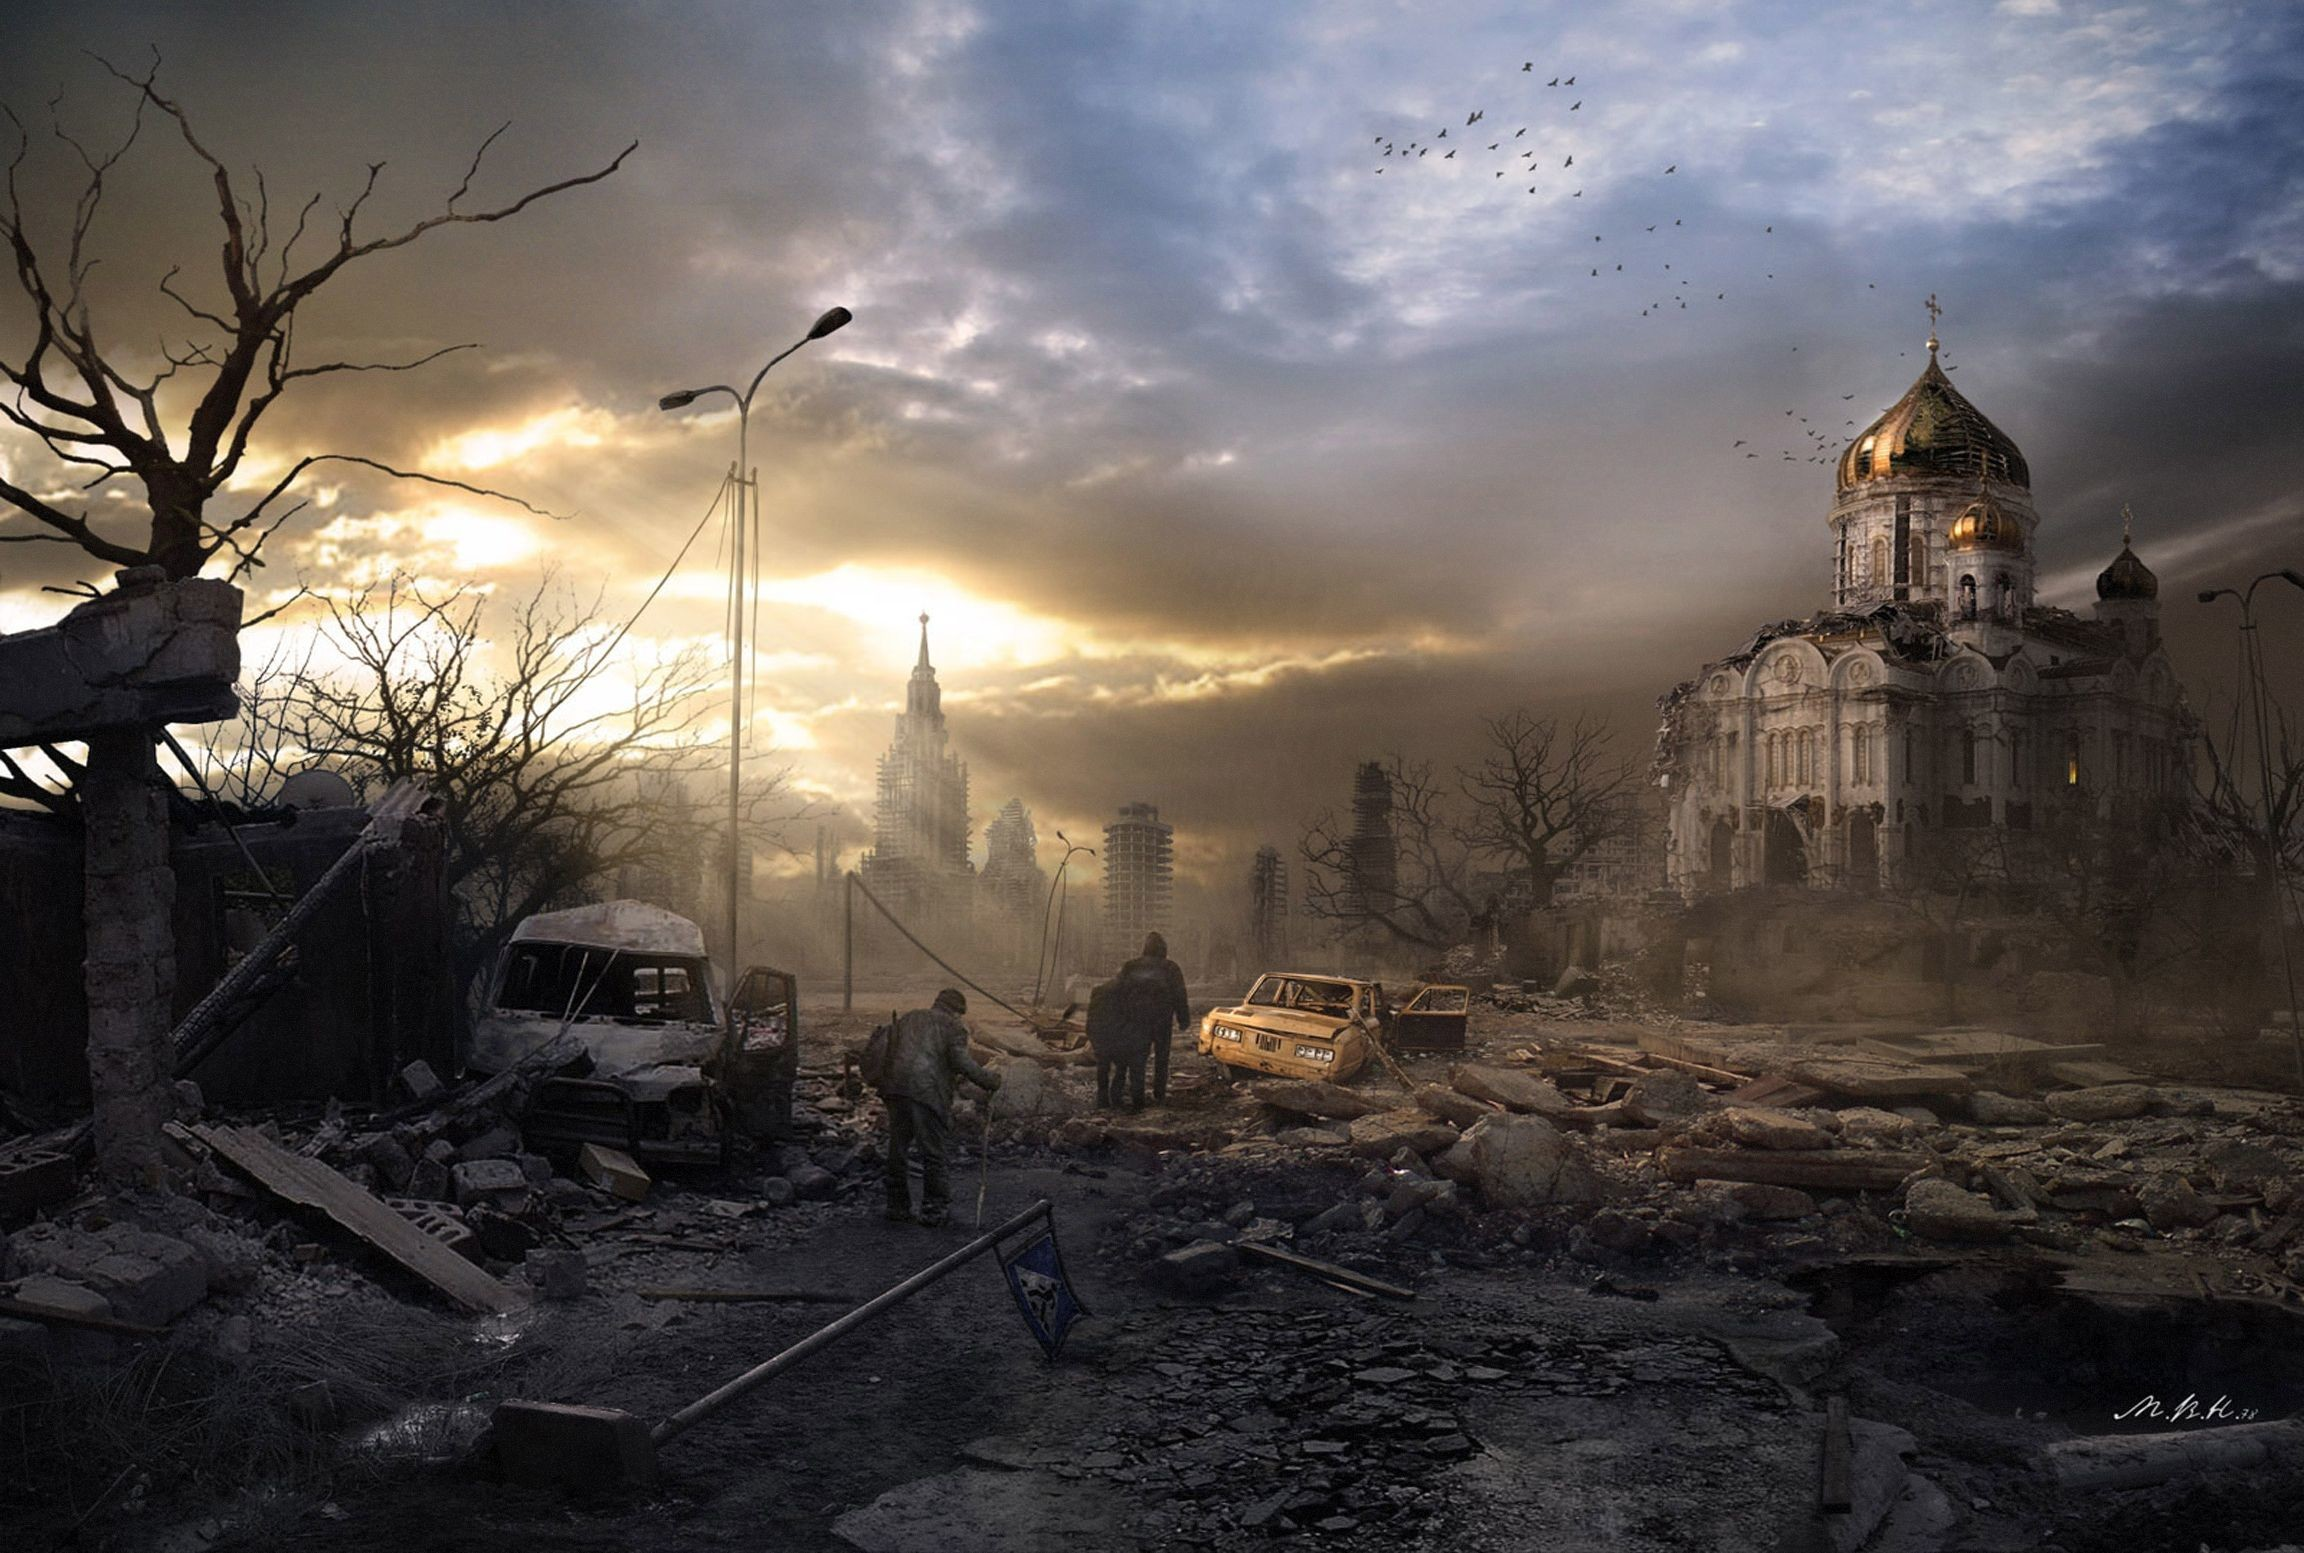 2304x1553 - Post Apocalyptic Wallpapers 35